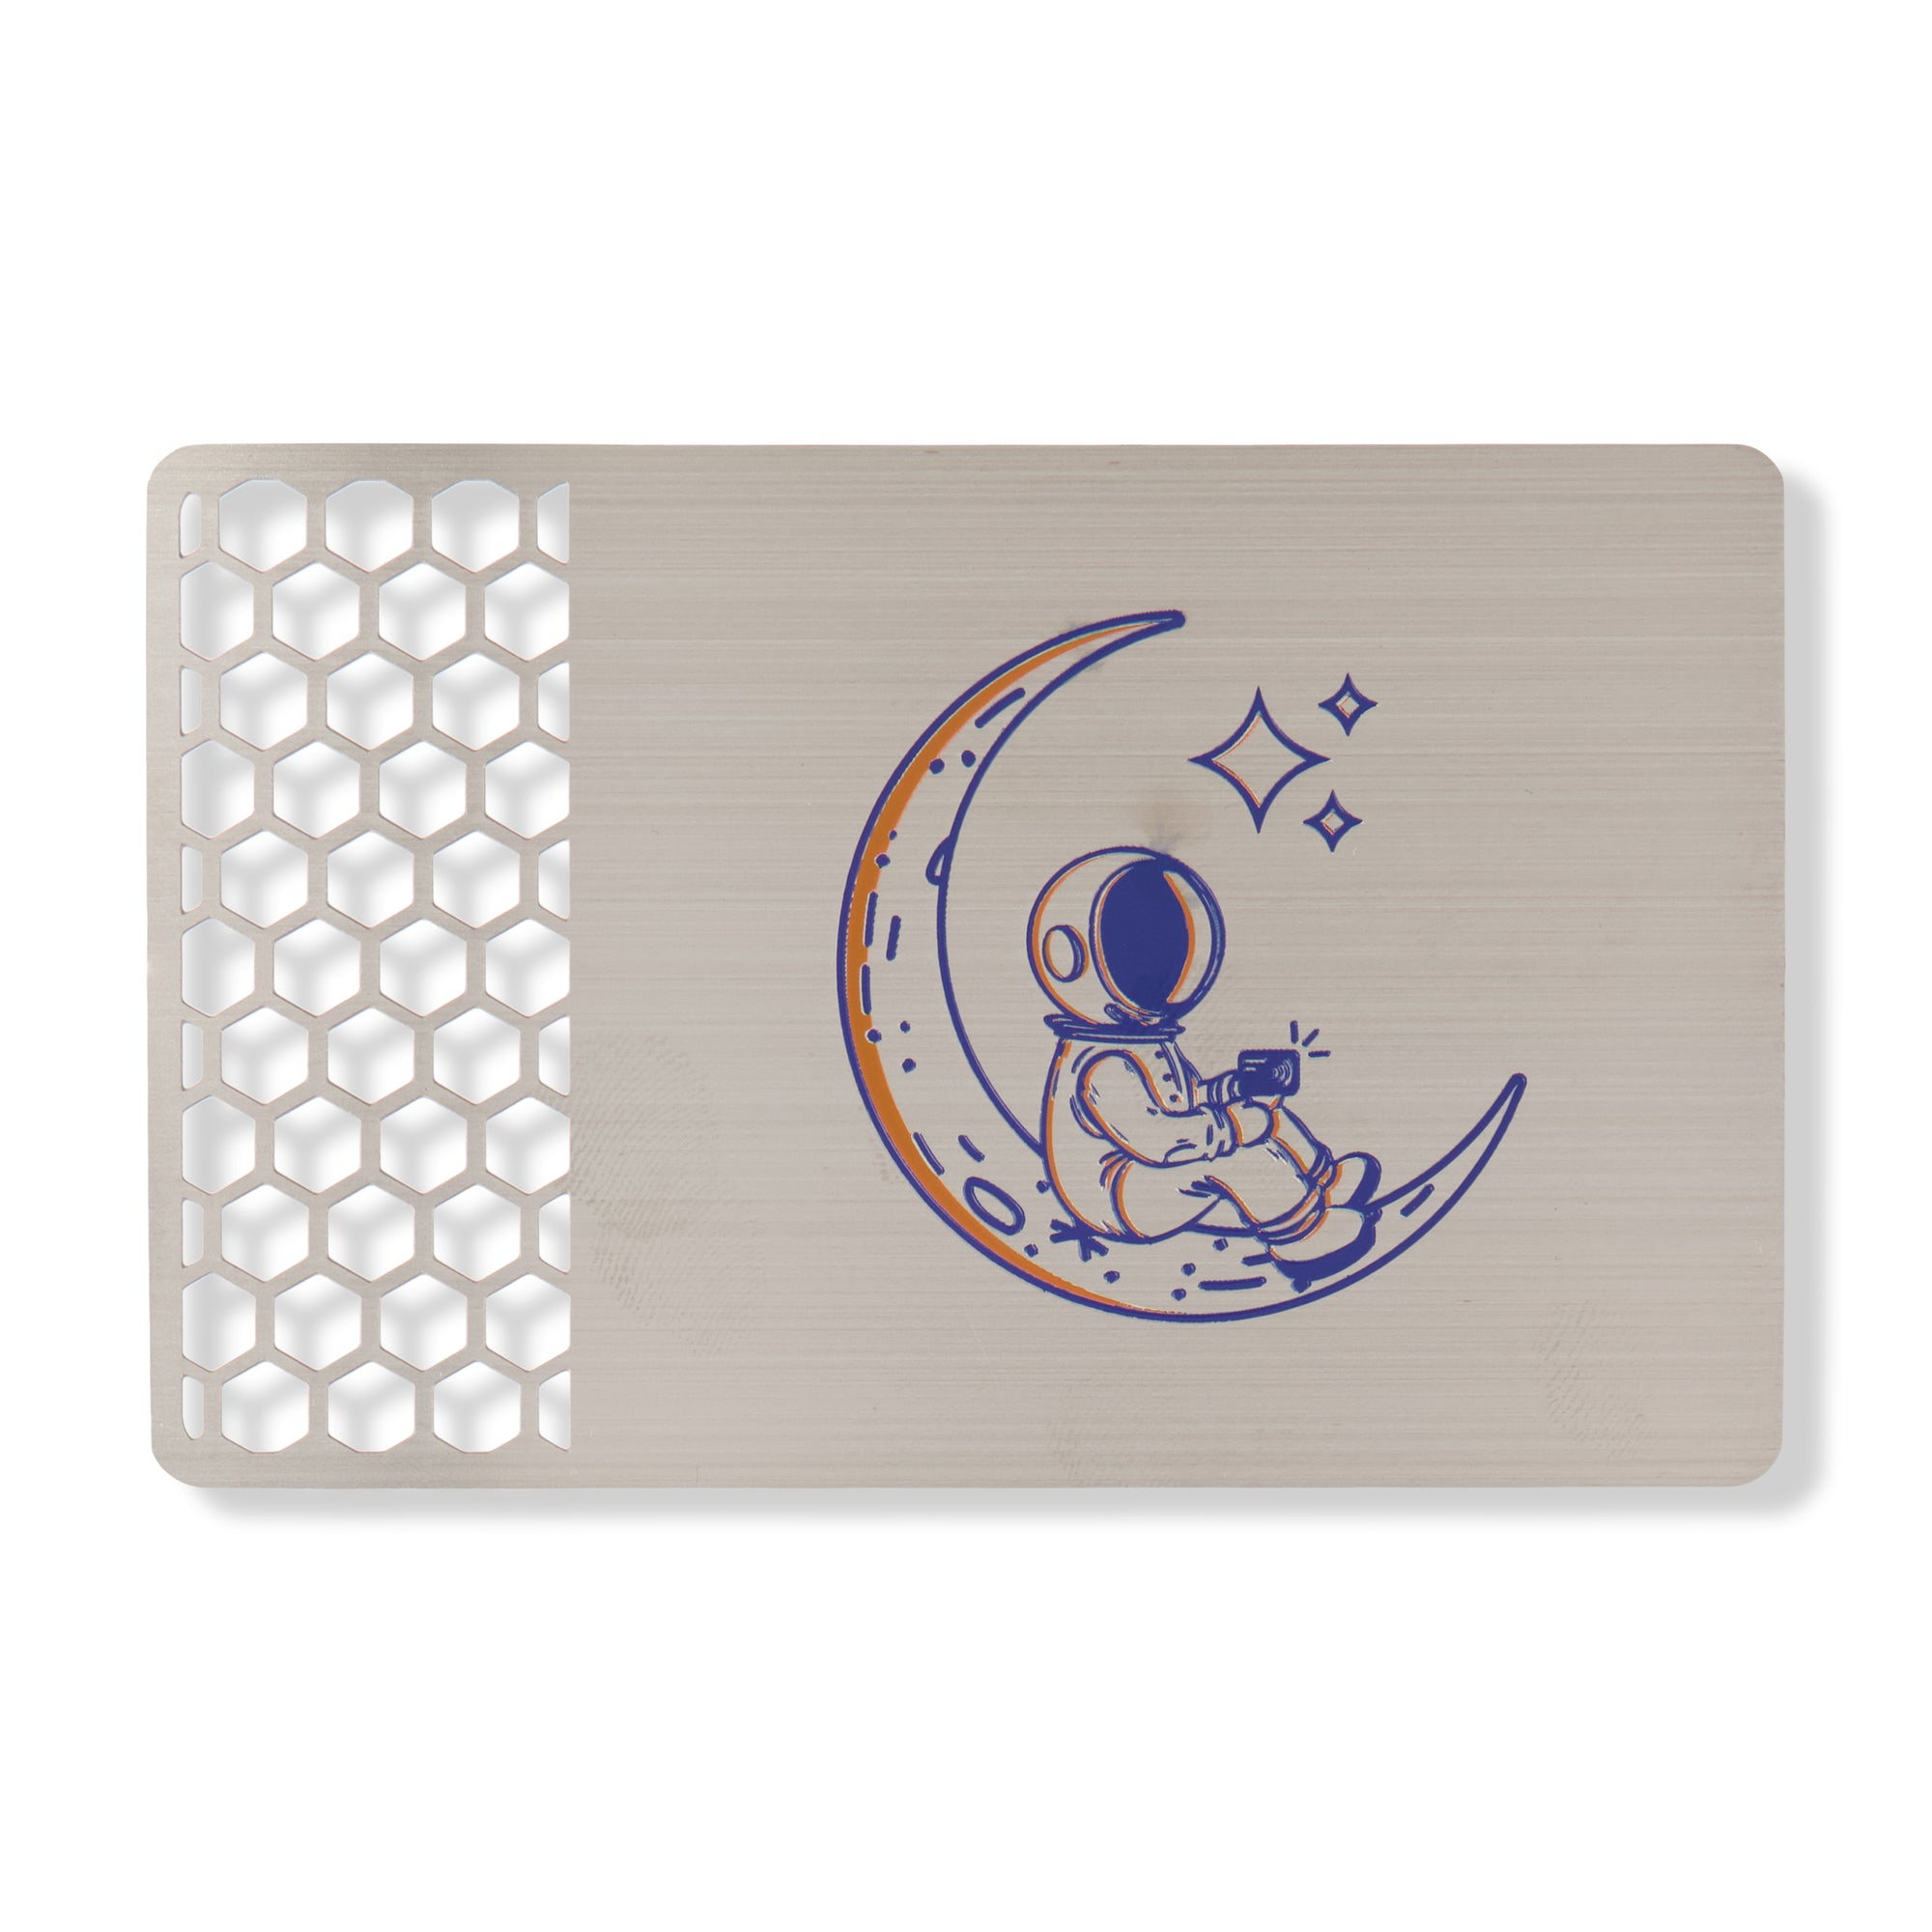 Stainless Steel Metal Card